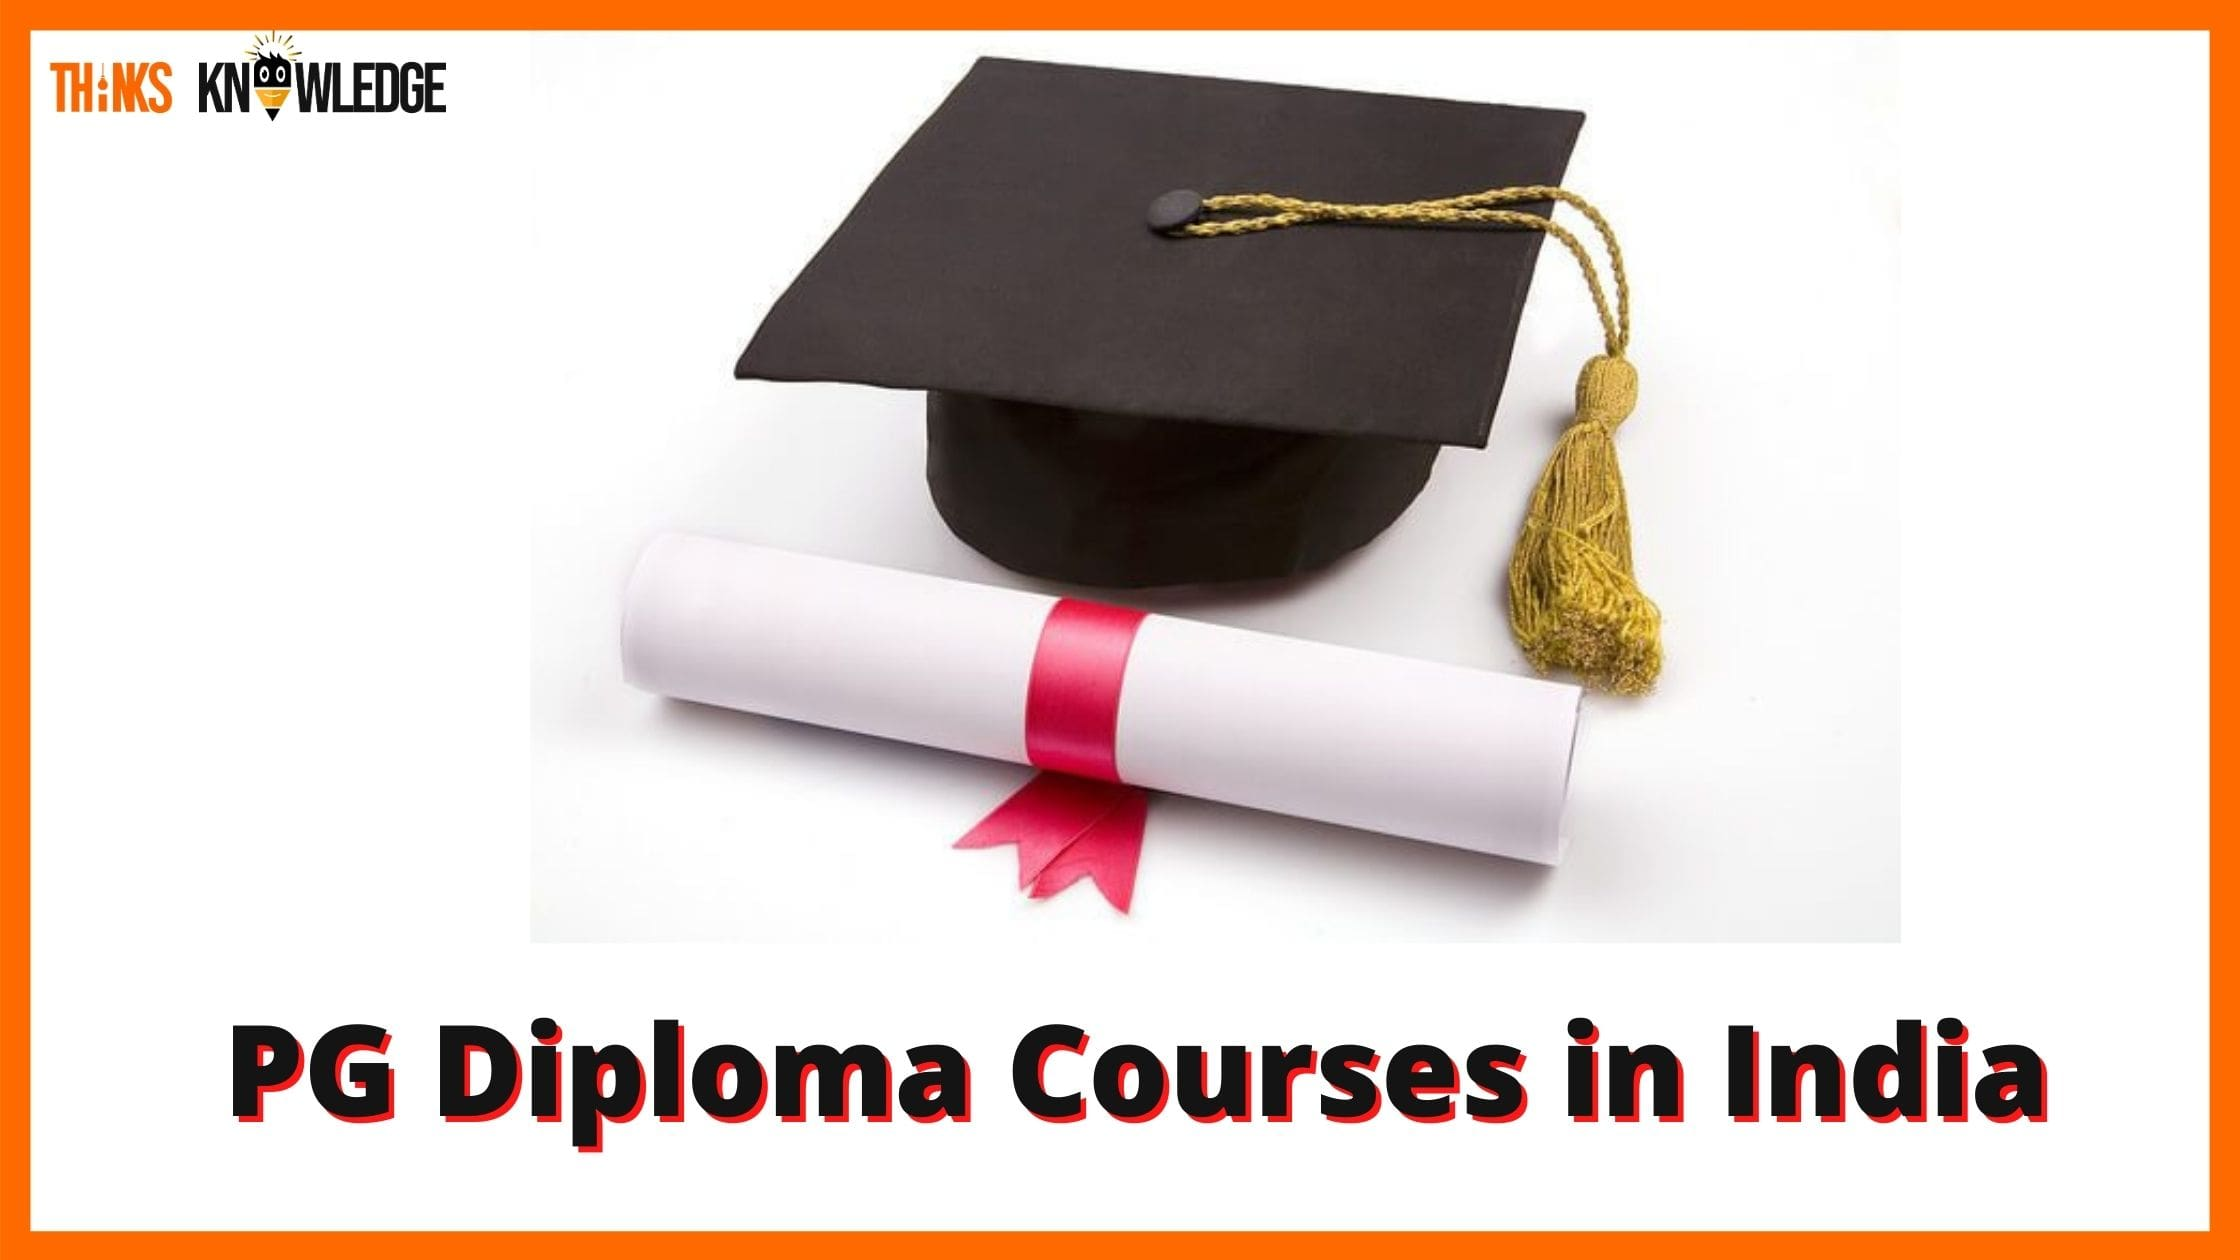 Pg Diploma Courses in India